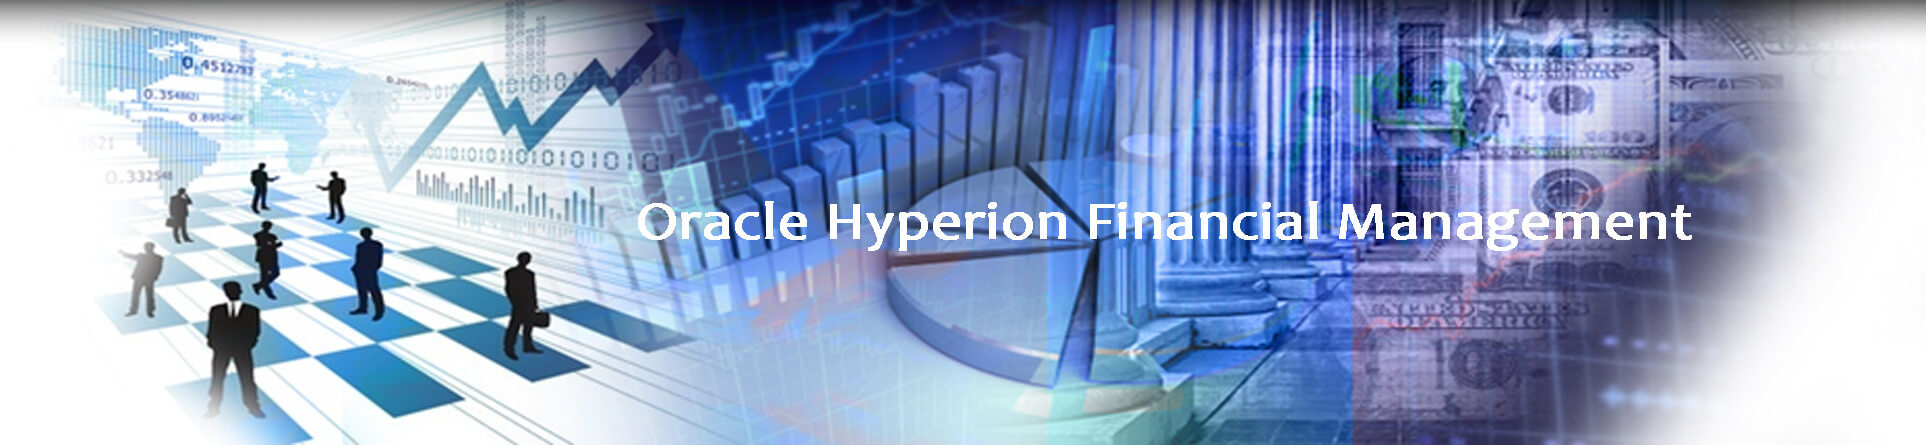 HYPERION FINANCIAL MANAGEMENT